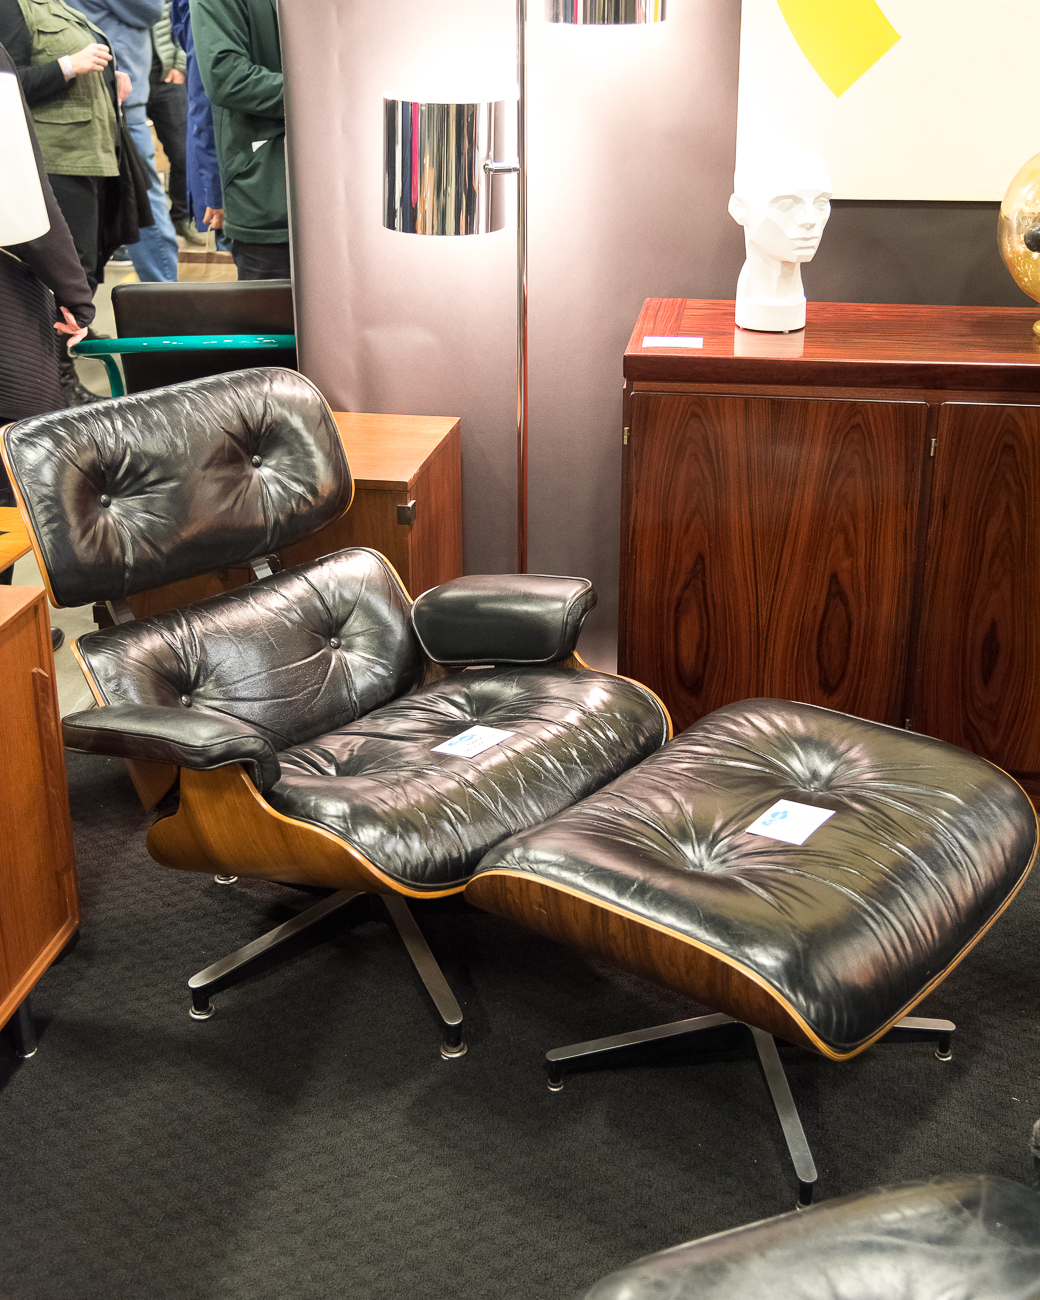 An{ }Eames Lounge Chair, first popularized in 1956 / Image: Cincinnati Refined // Published: 2.24.19